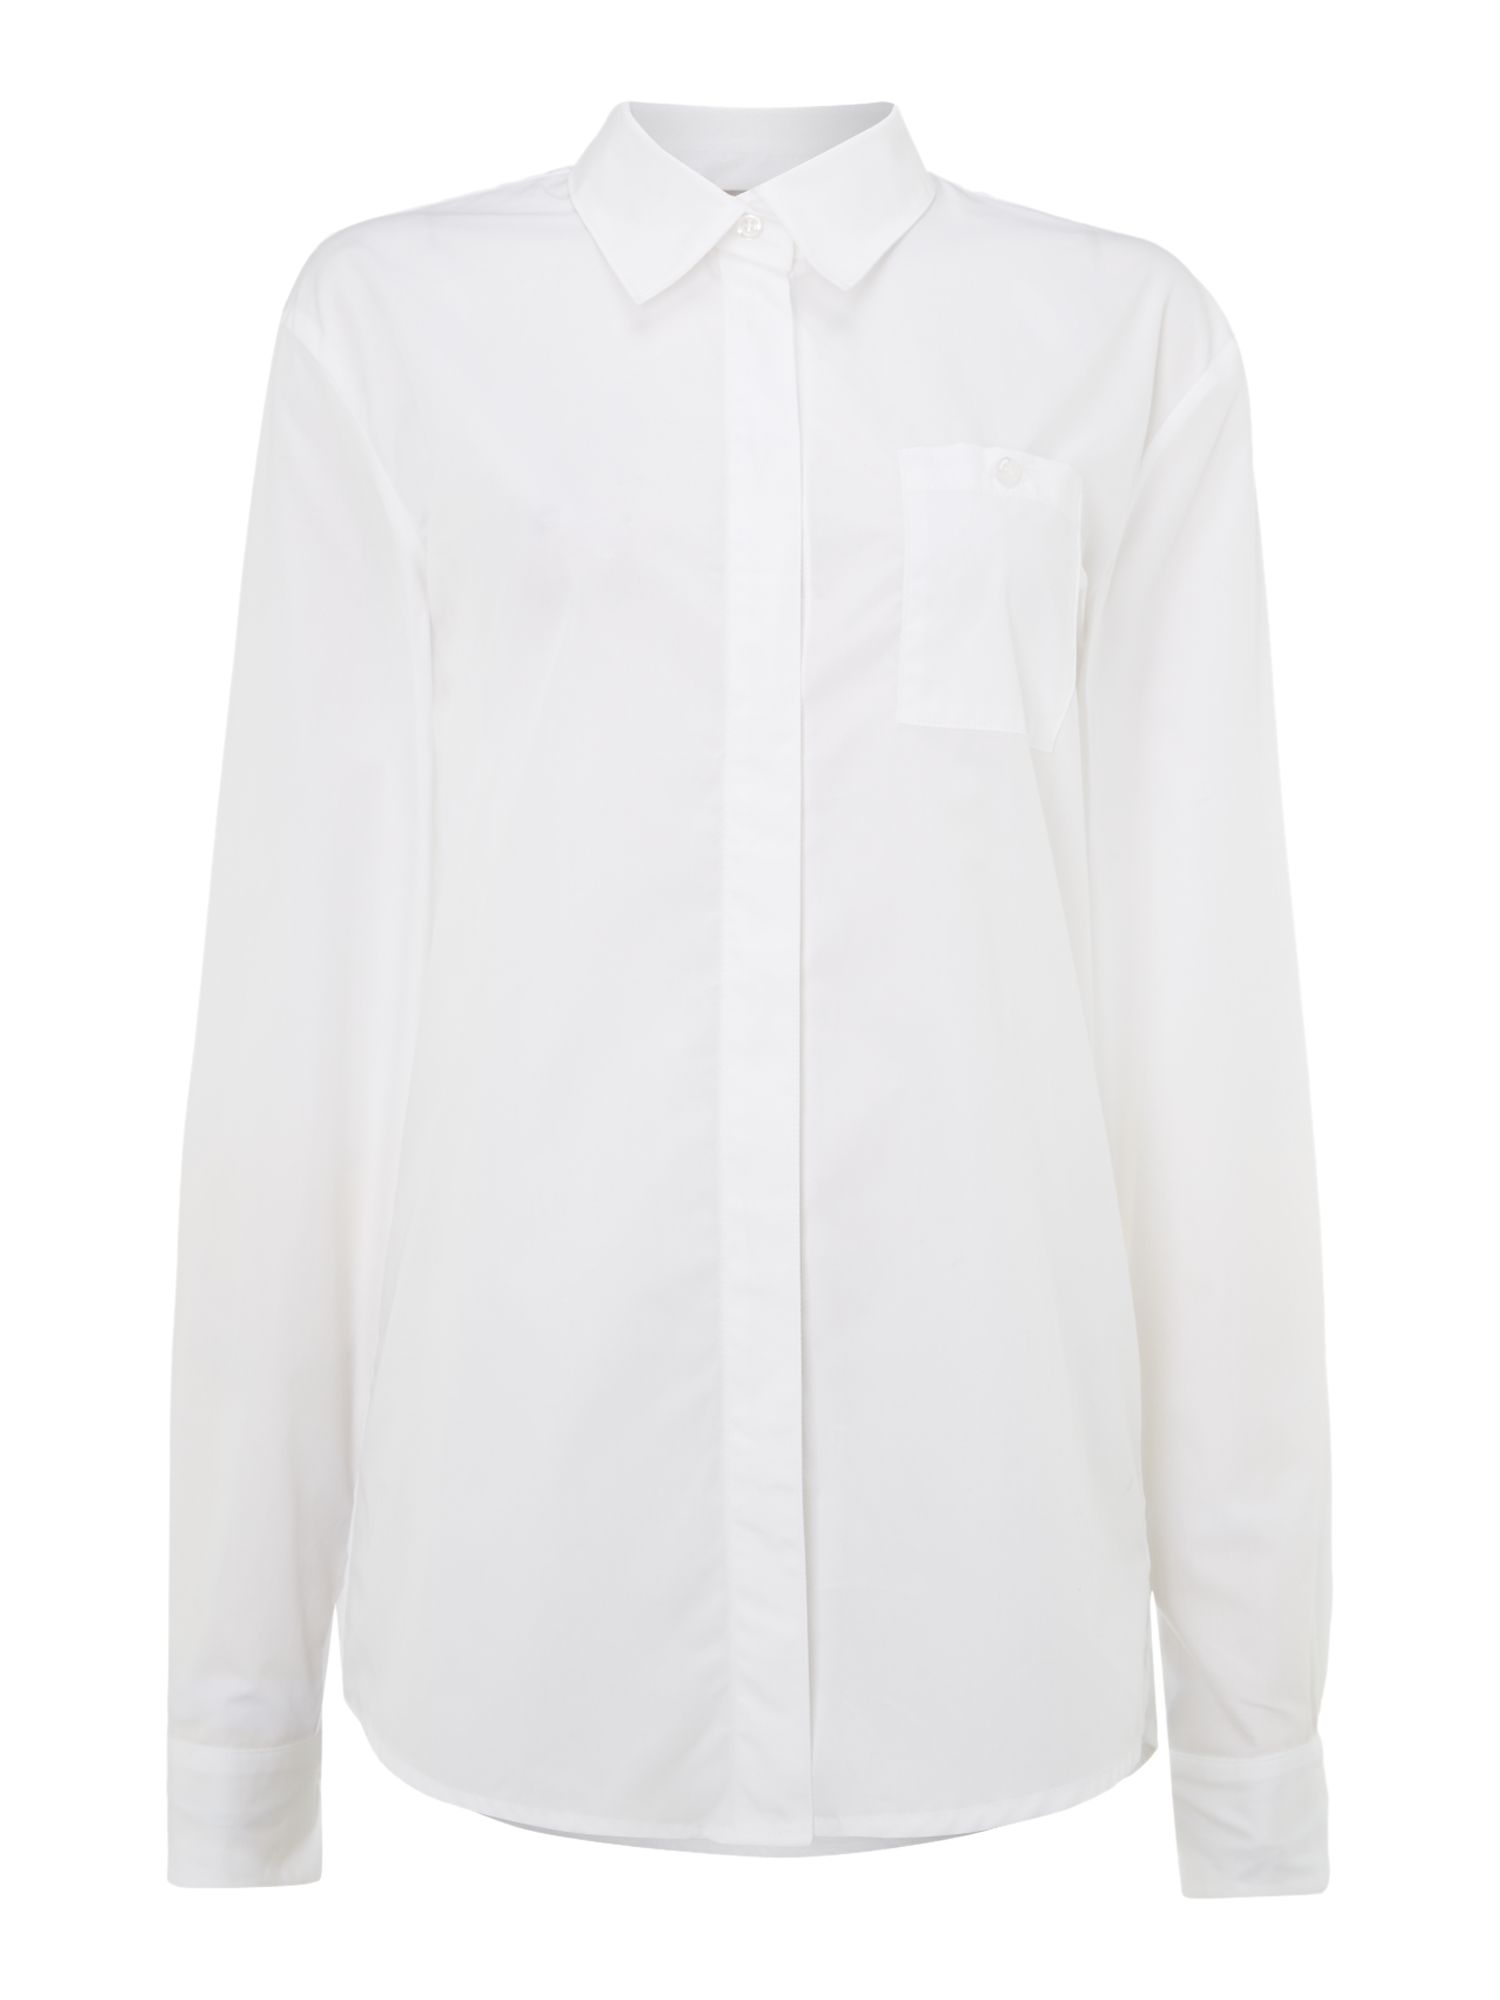 Patch pocket boyfriend shirt